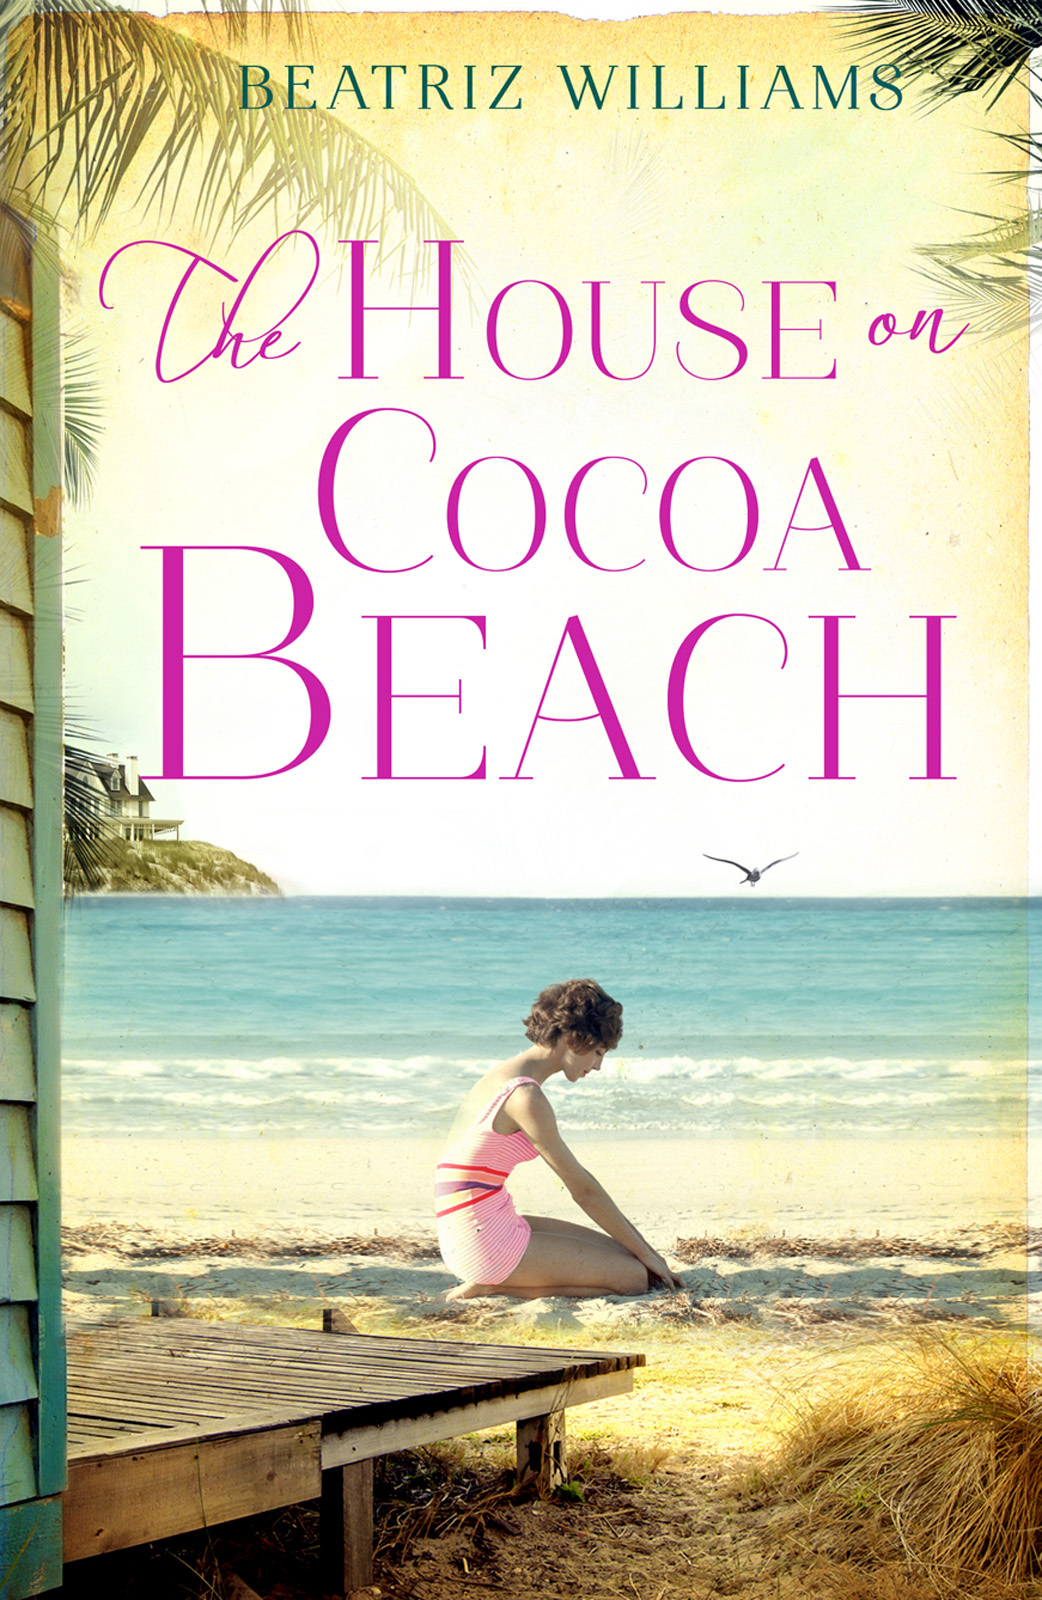 Beatriz Williams The House on Cocoa Beach: A sweeping epic love story, perfect for fans of historical romance modern californian beach house the